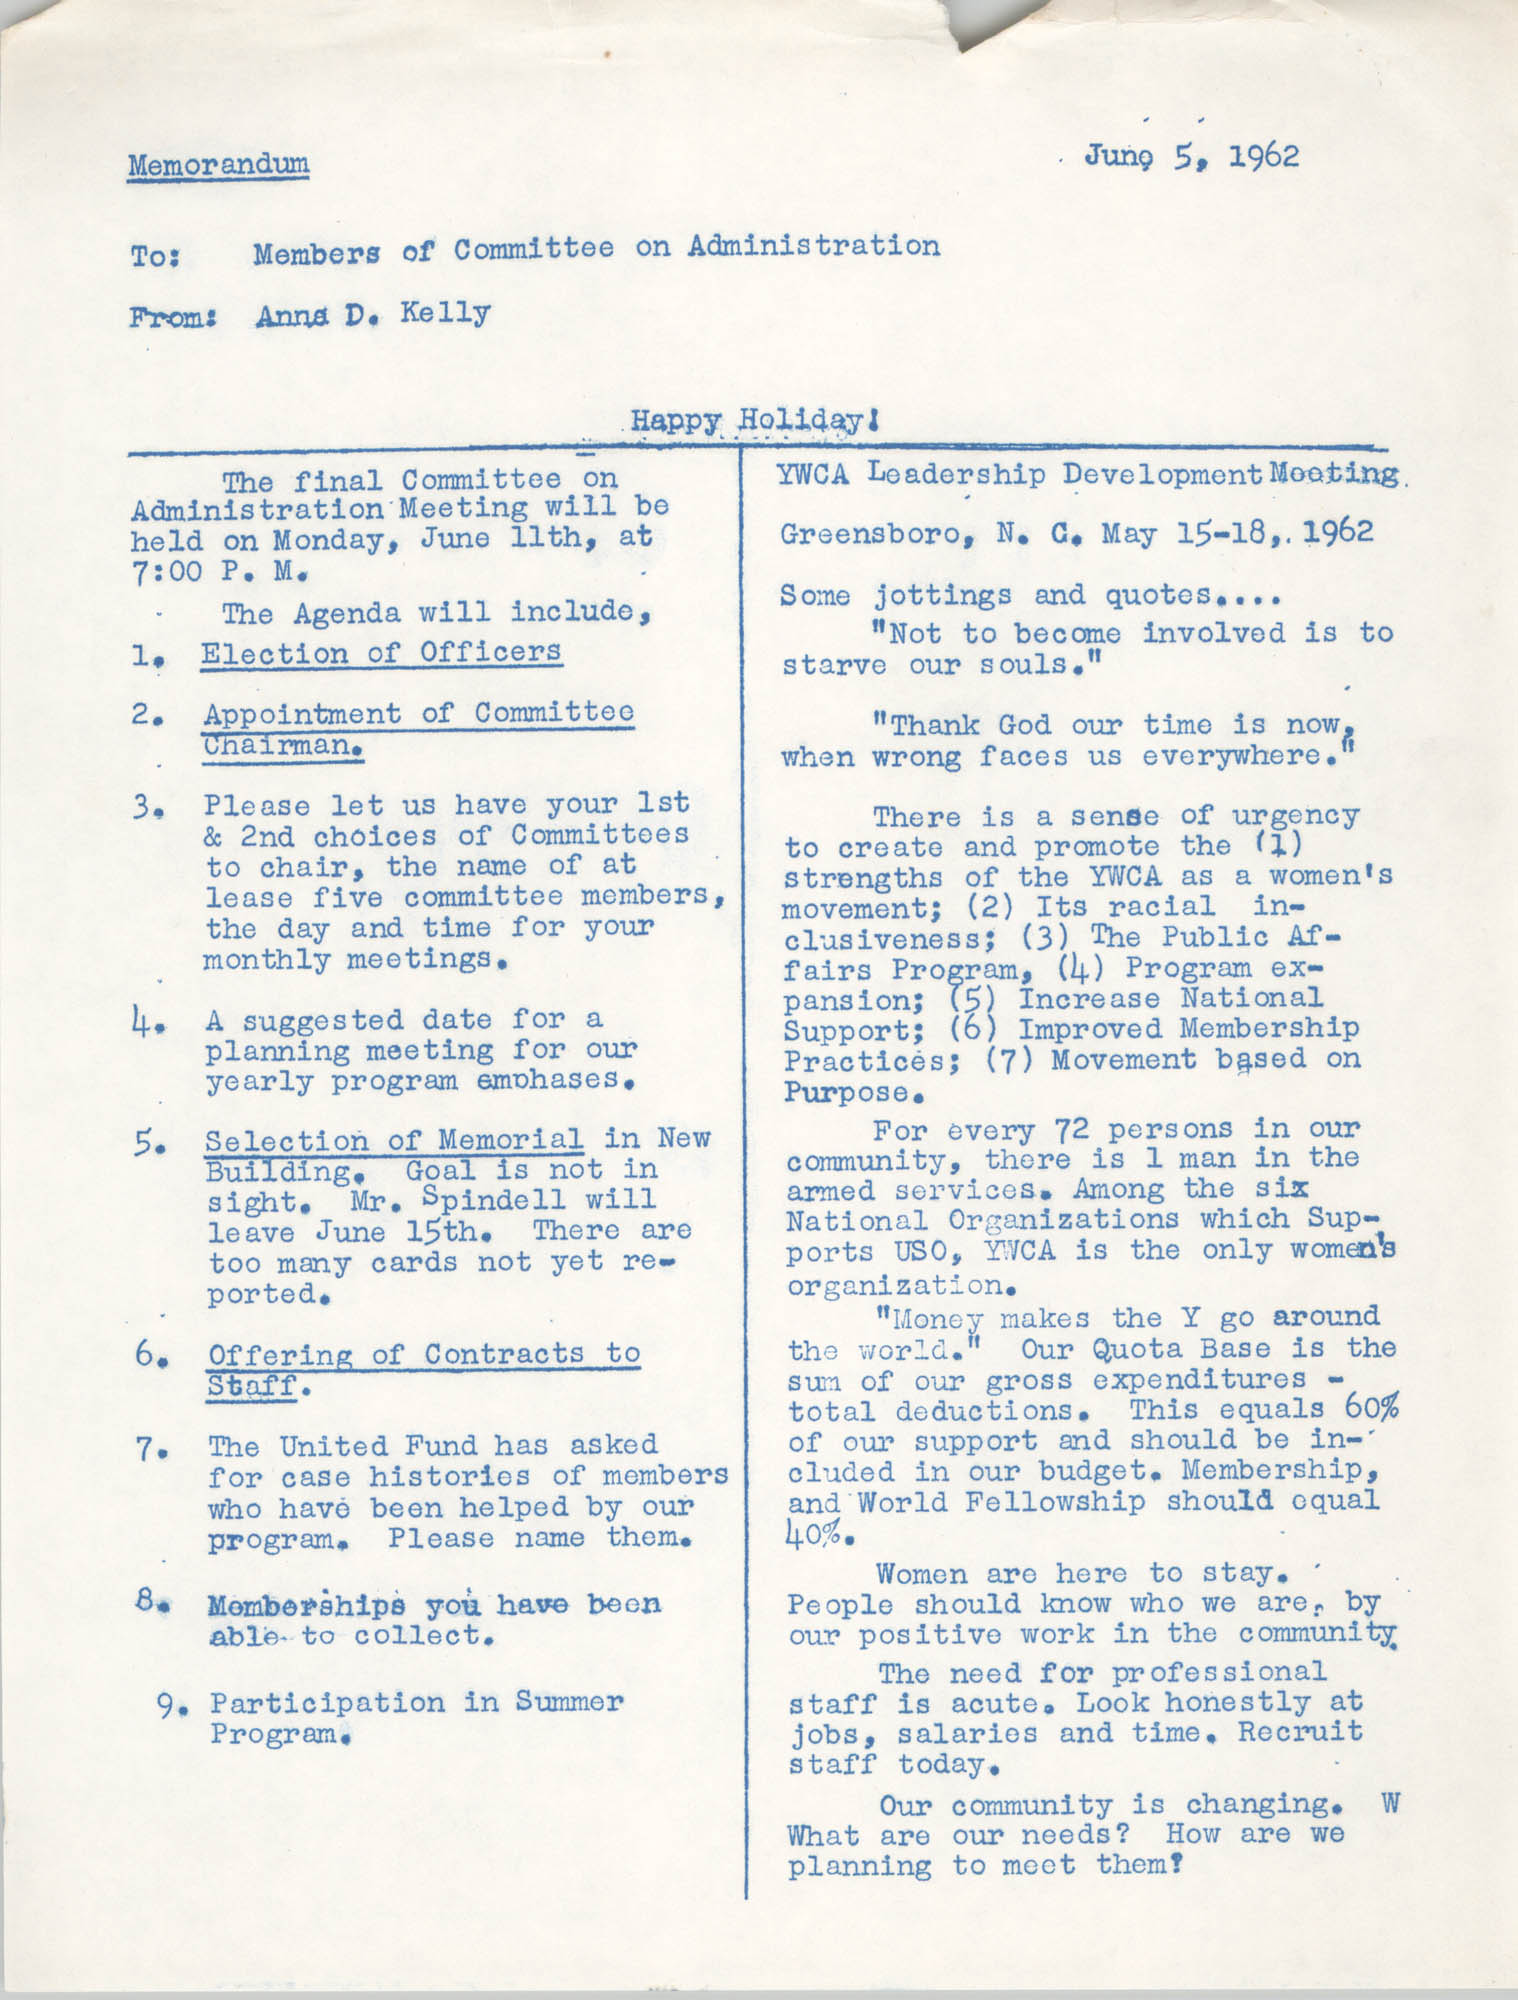 Coming Street Y.W.C.A. Memorandum, July 17, 1962